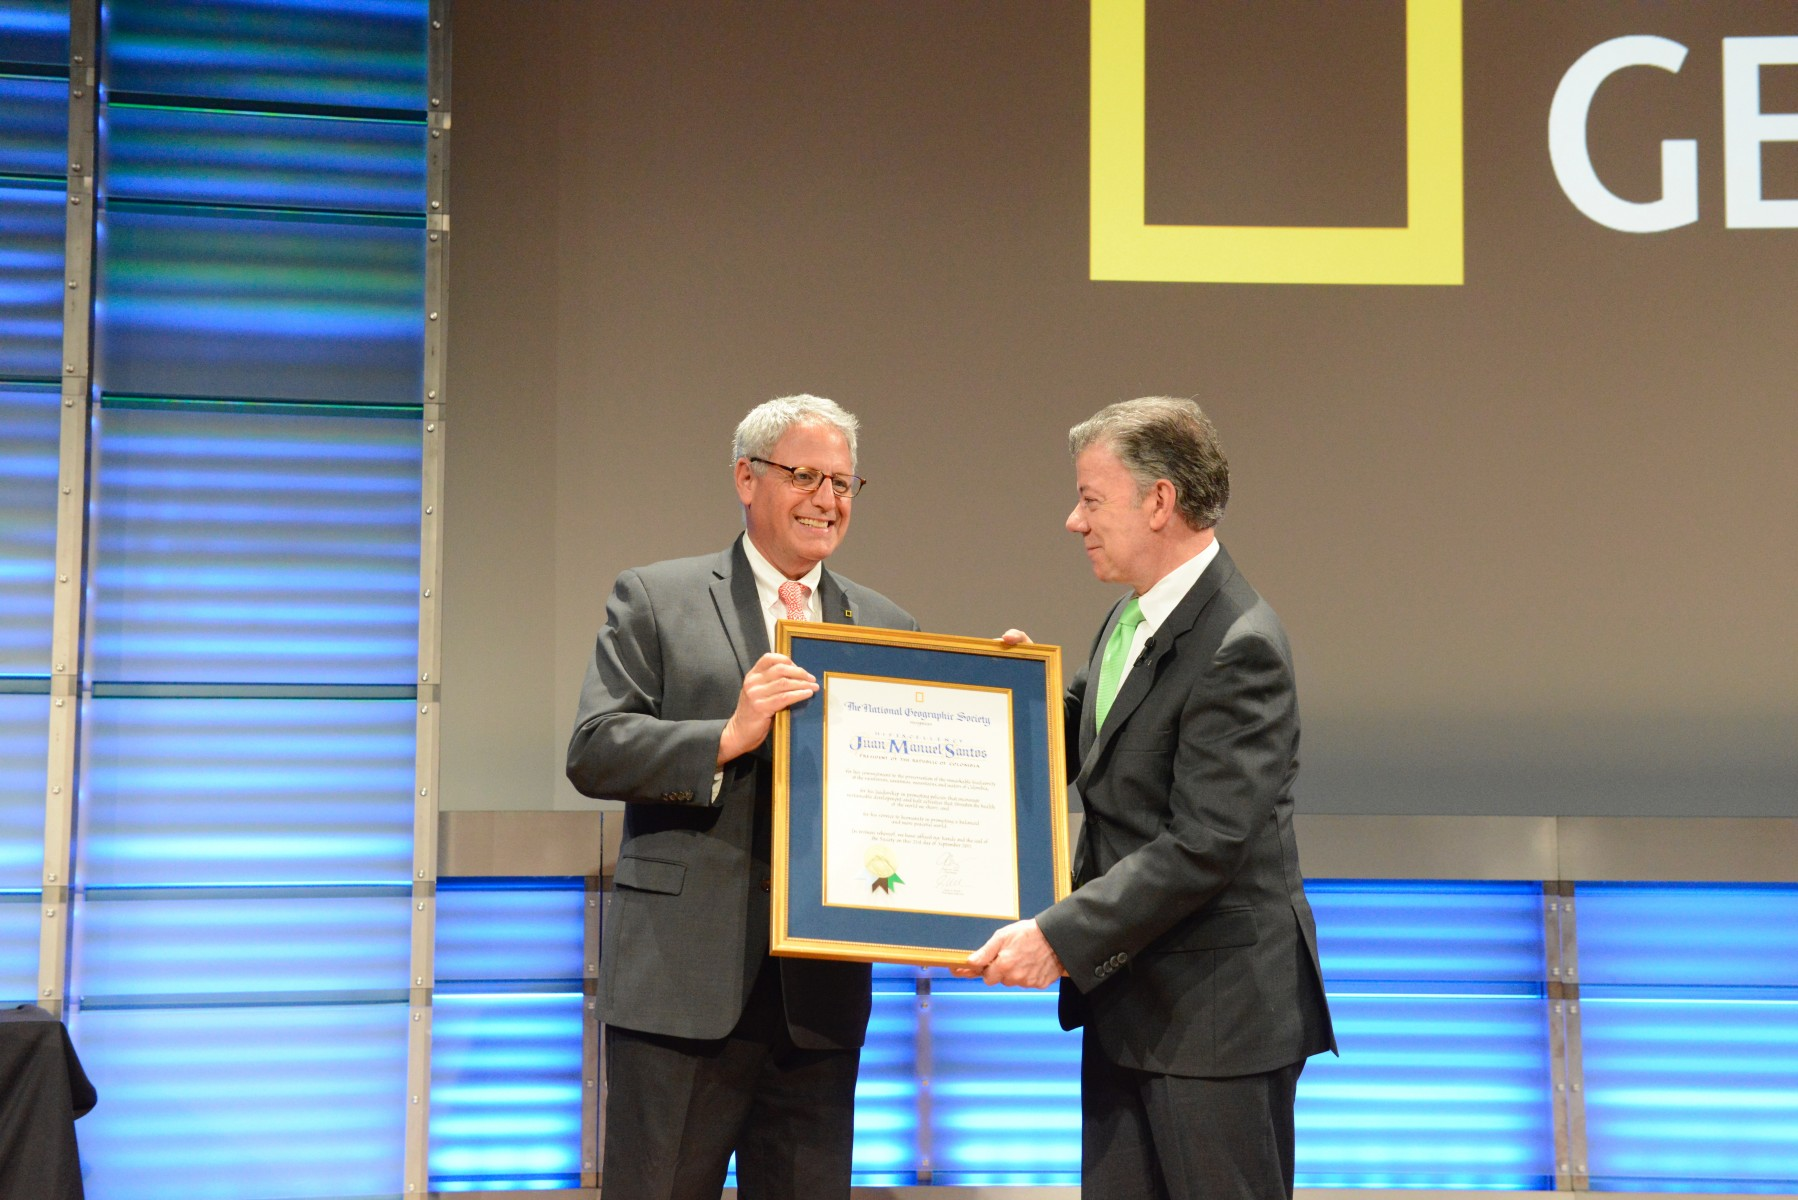 National Geographic Society Honors President Juan Manuel Santos of Colombia for his Commitment to Conservation